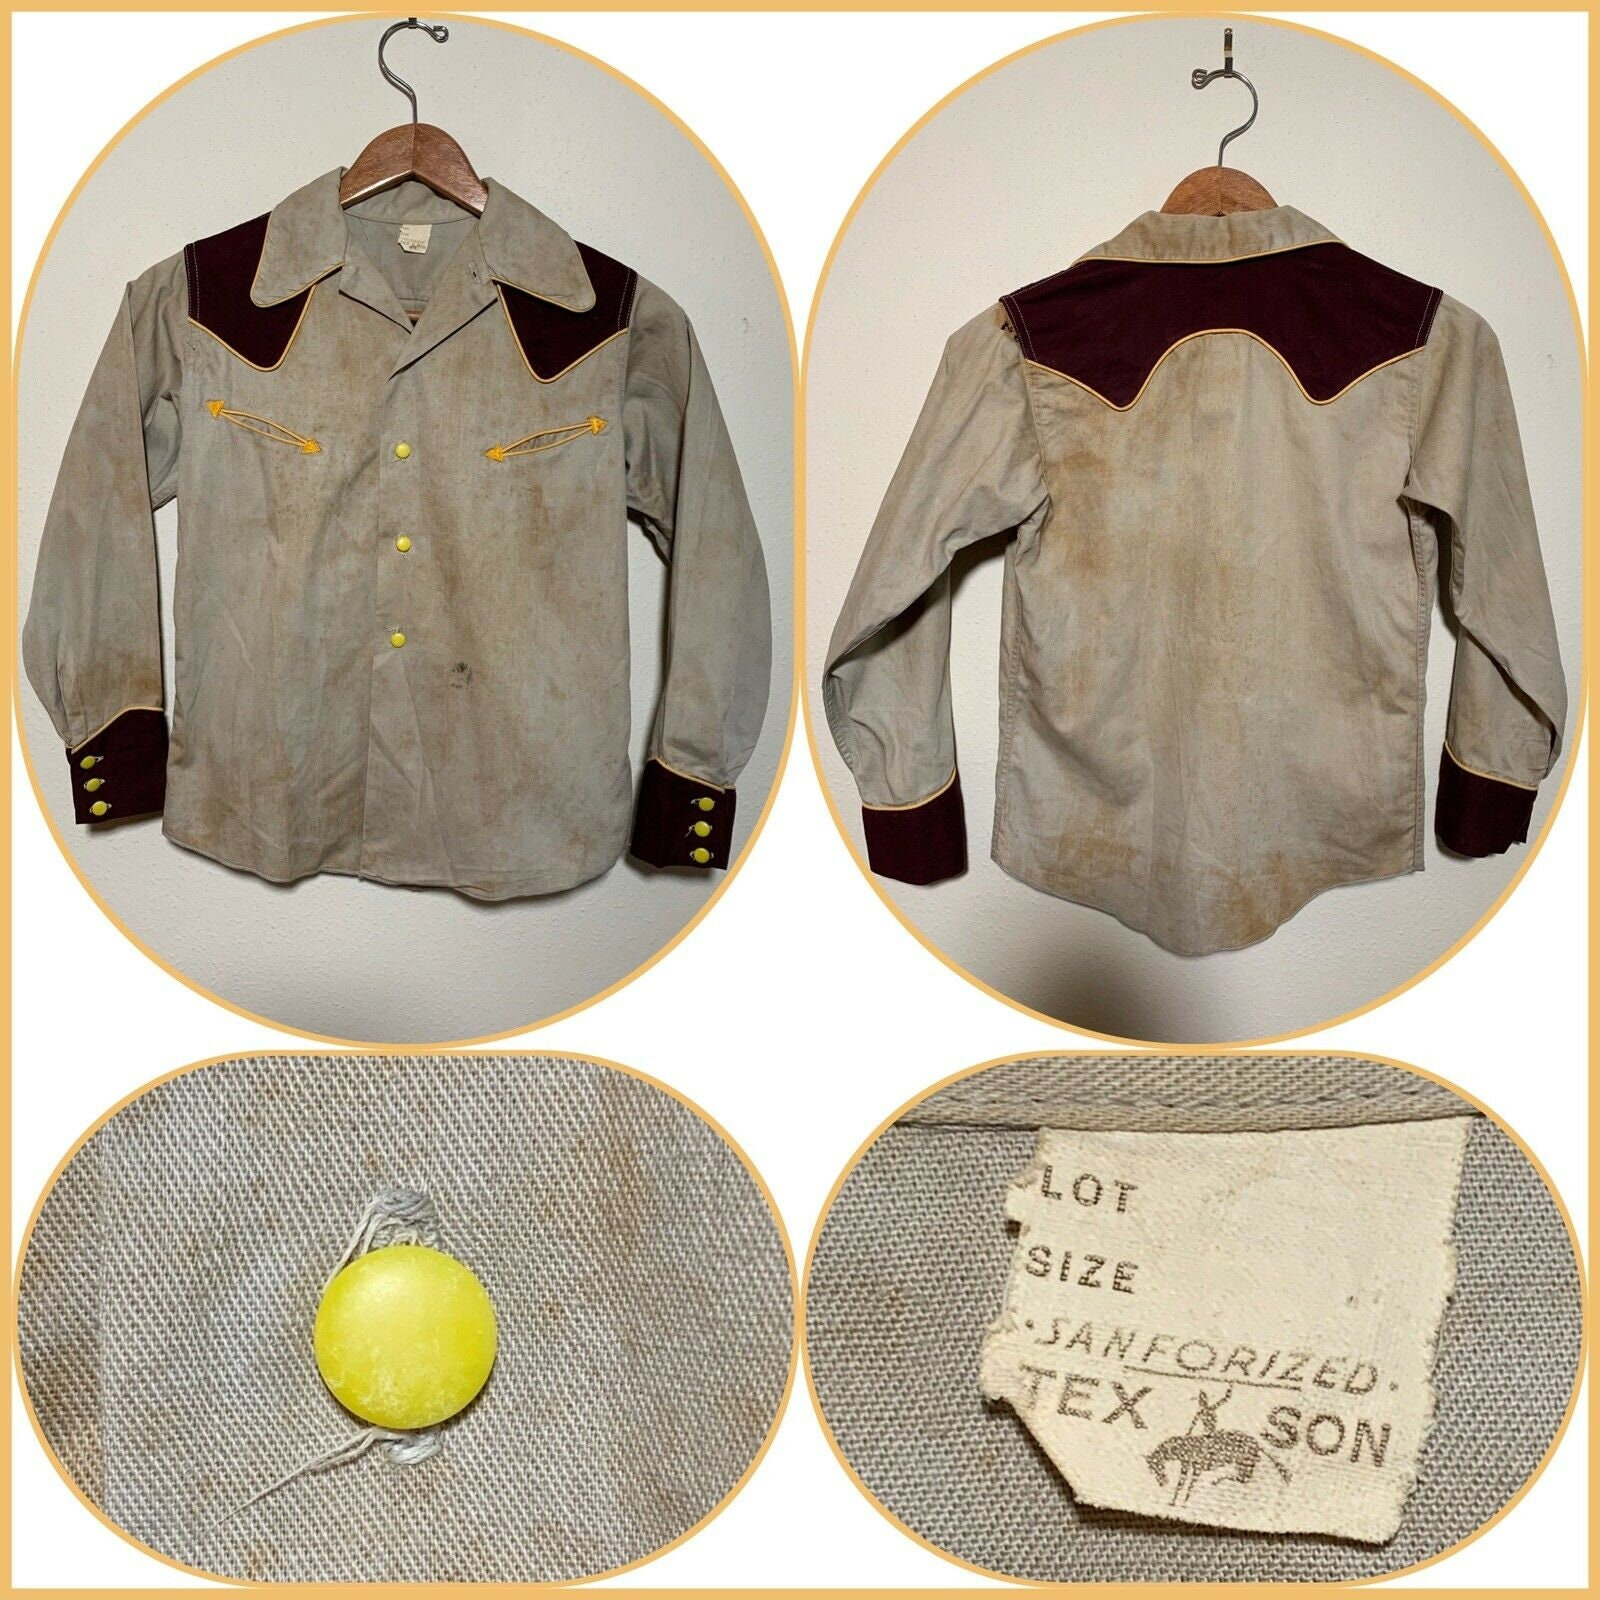 1940s Men's Shirts, Sweaters, Vests 40S Tex Son Western Wear Cowboy Shirt Sanforized Boys Age 12 Buckaroo Texas Rodeo Rockabilly Distressed Honky Tonk Cowgirl Fancy Shirt $87.50 AT vintagedancer.com